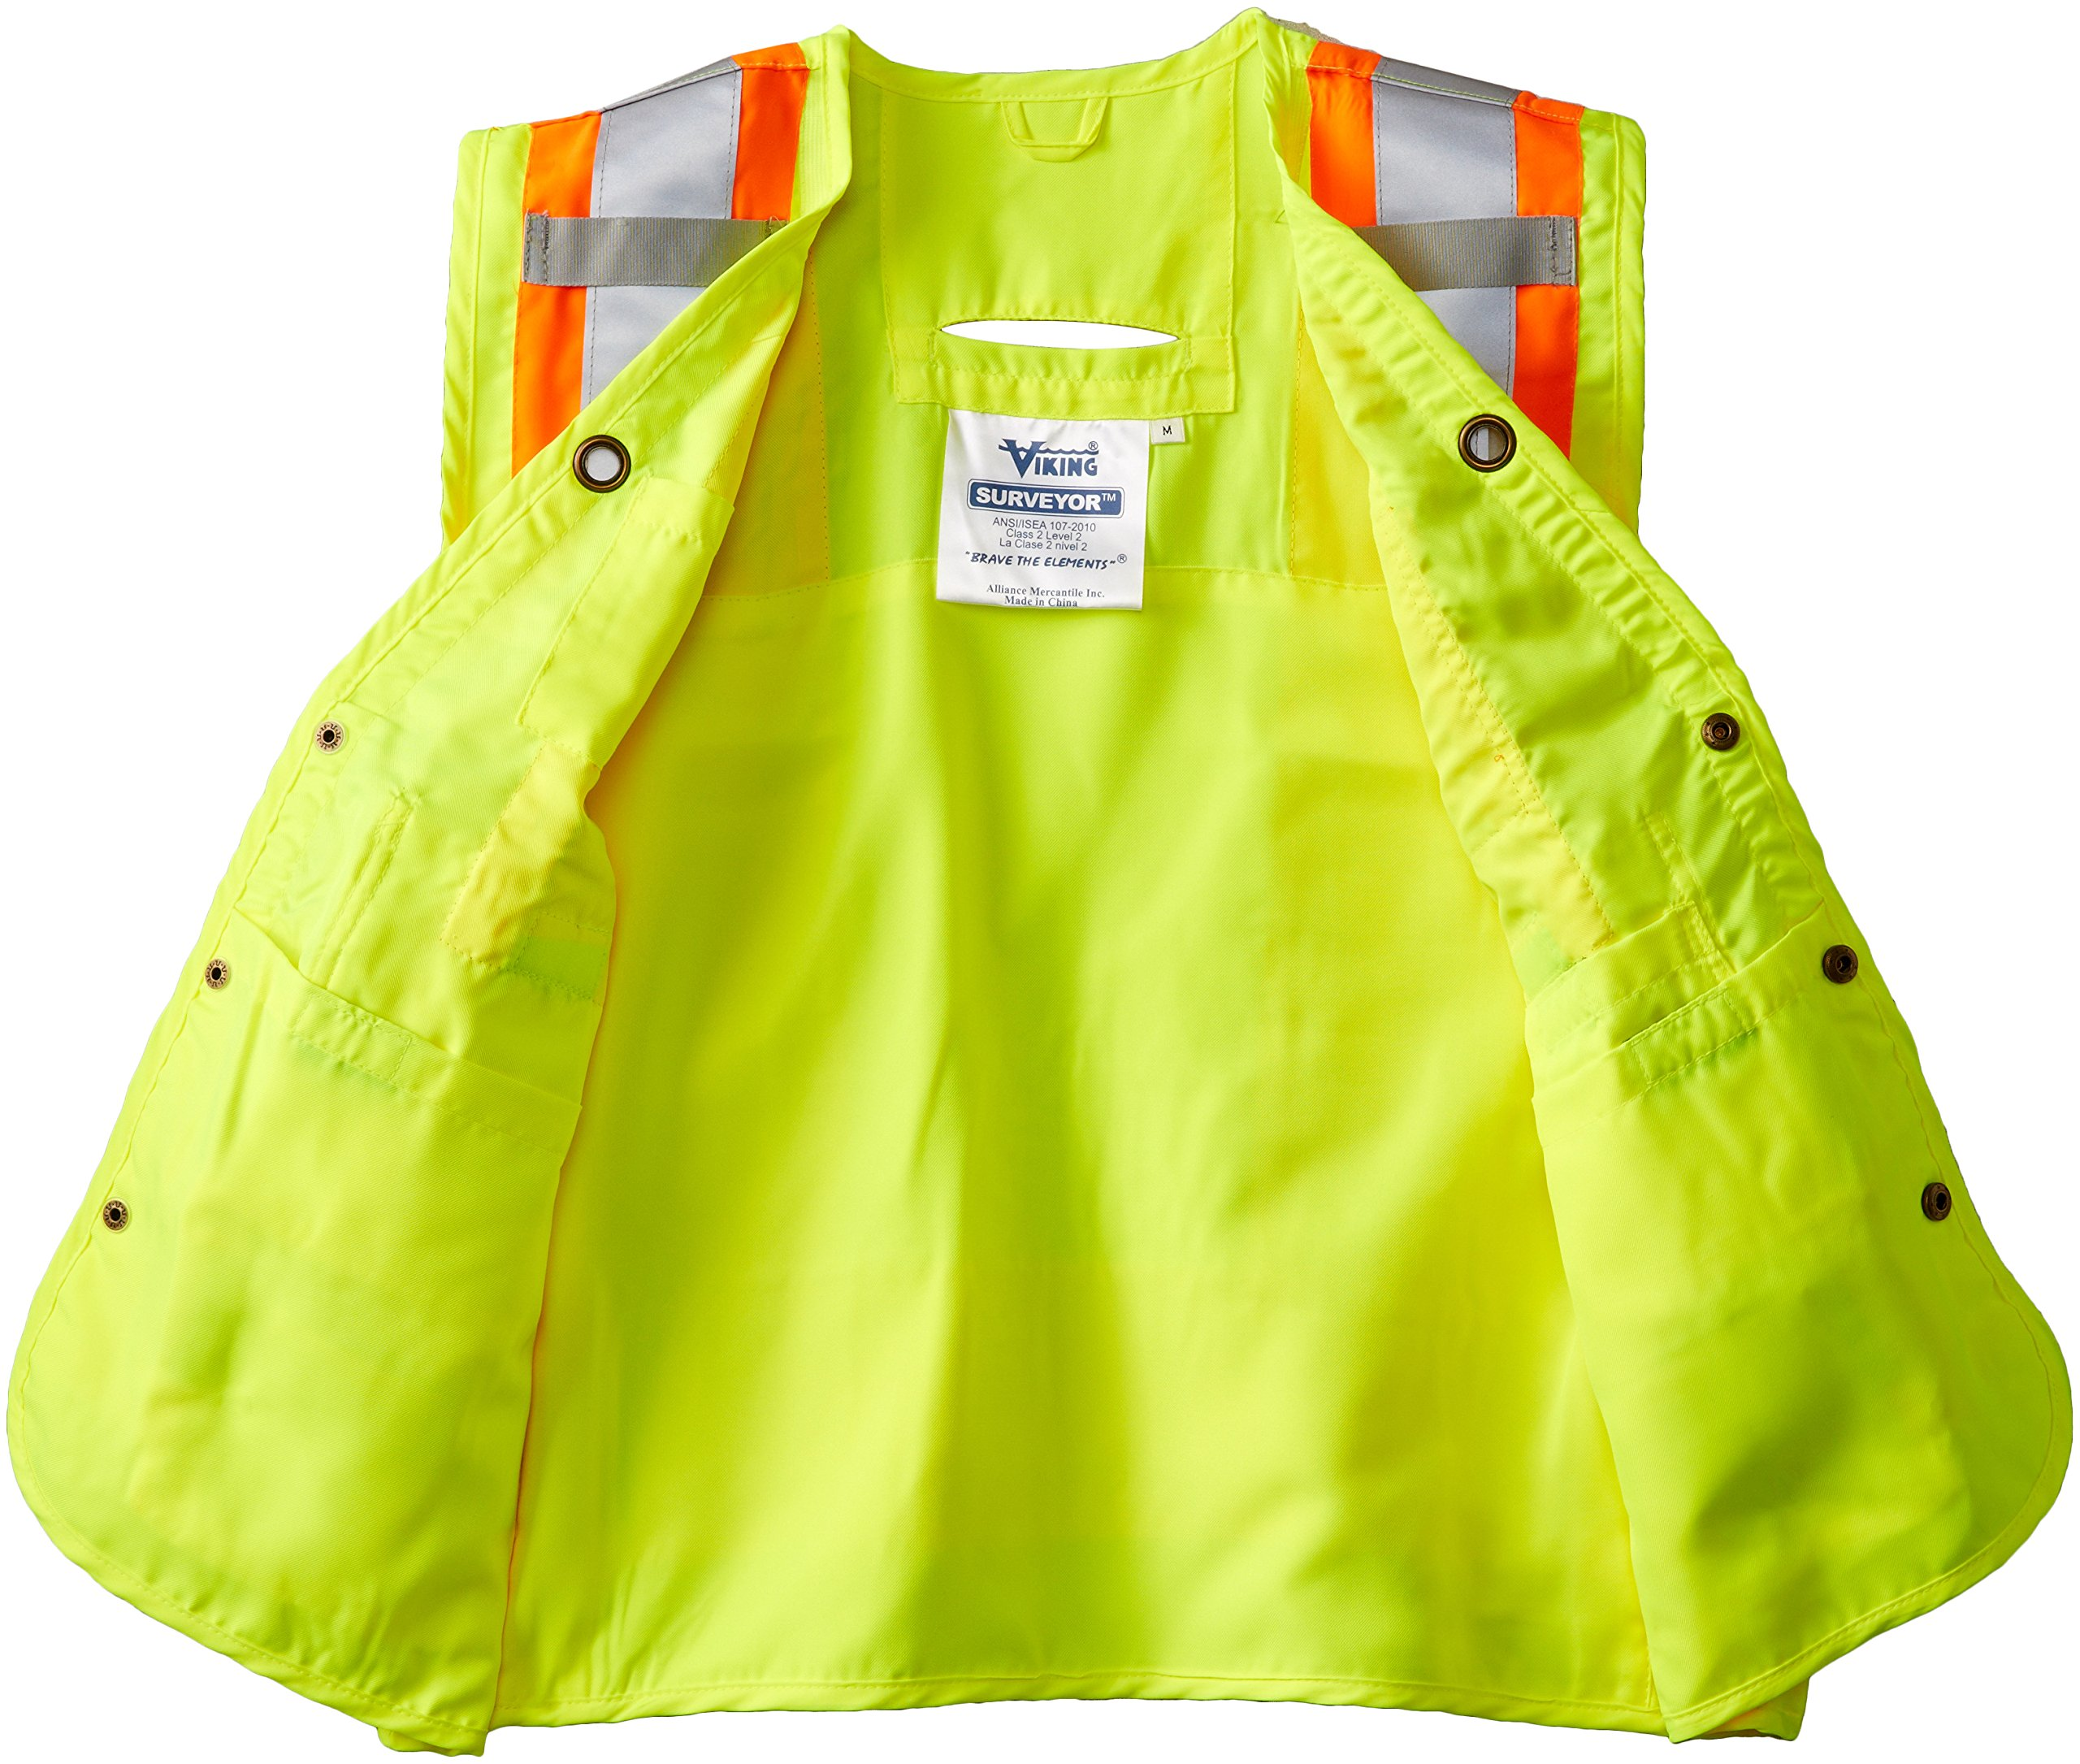 Viking Surveyor Hi-Vis Safety Vest, Green, XX-Large by Viking (Image #3)